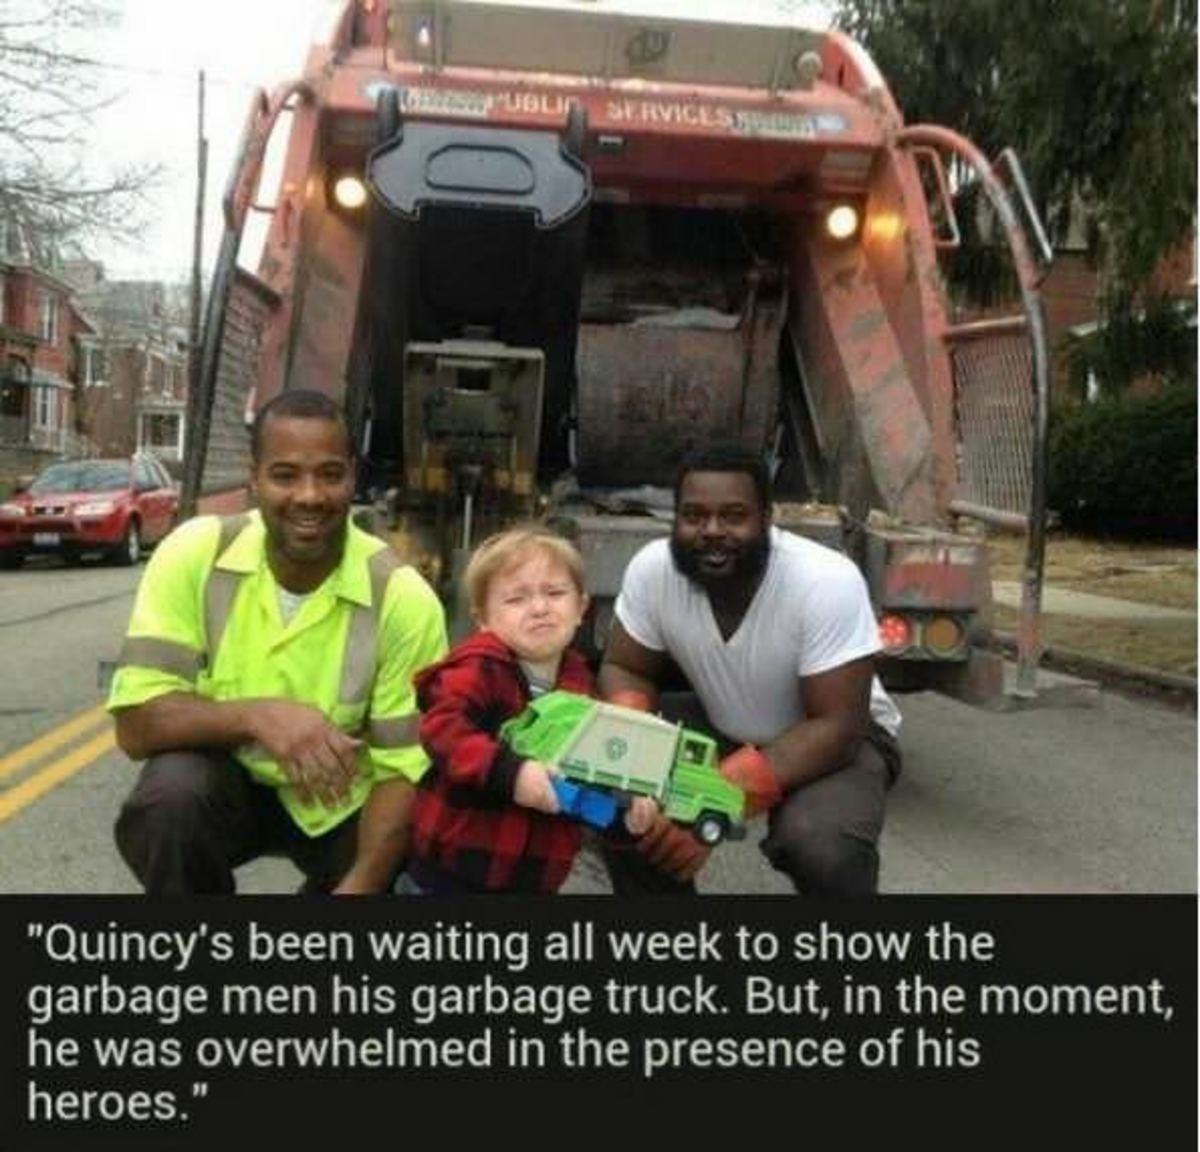 pleasant Lark. .. They do deserve some respect and appreciation. They do a valuable service to society. Thank you Garbage men.